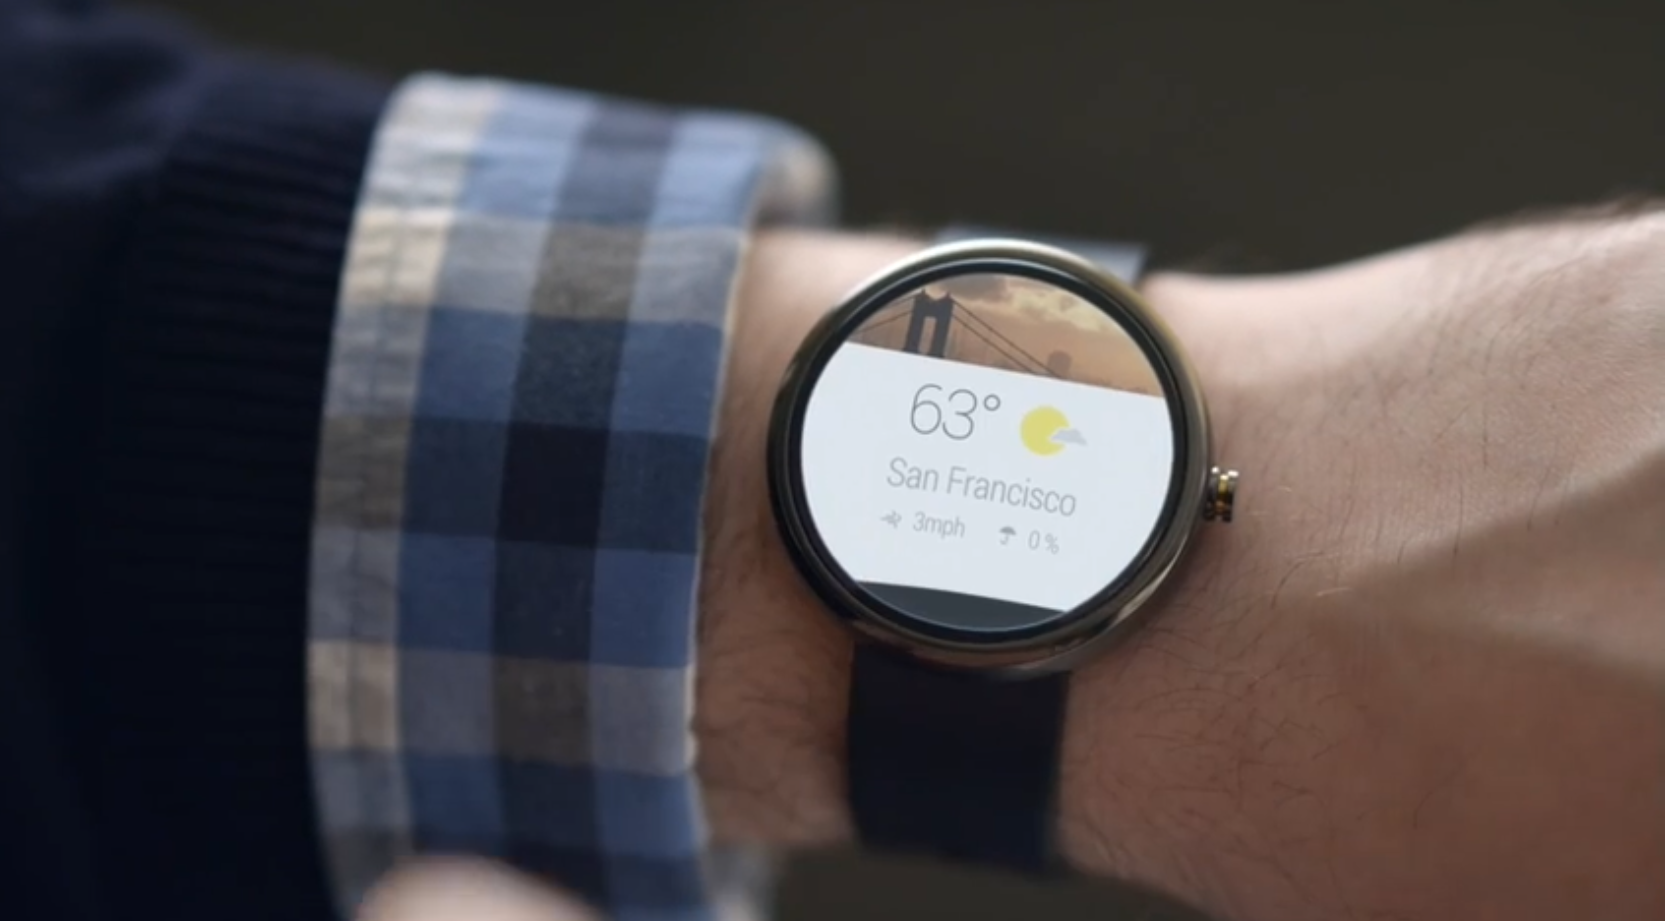 Android watches would give location-specific information. (Image courtesy: Google)